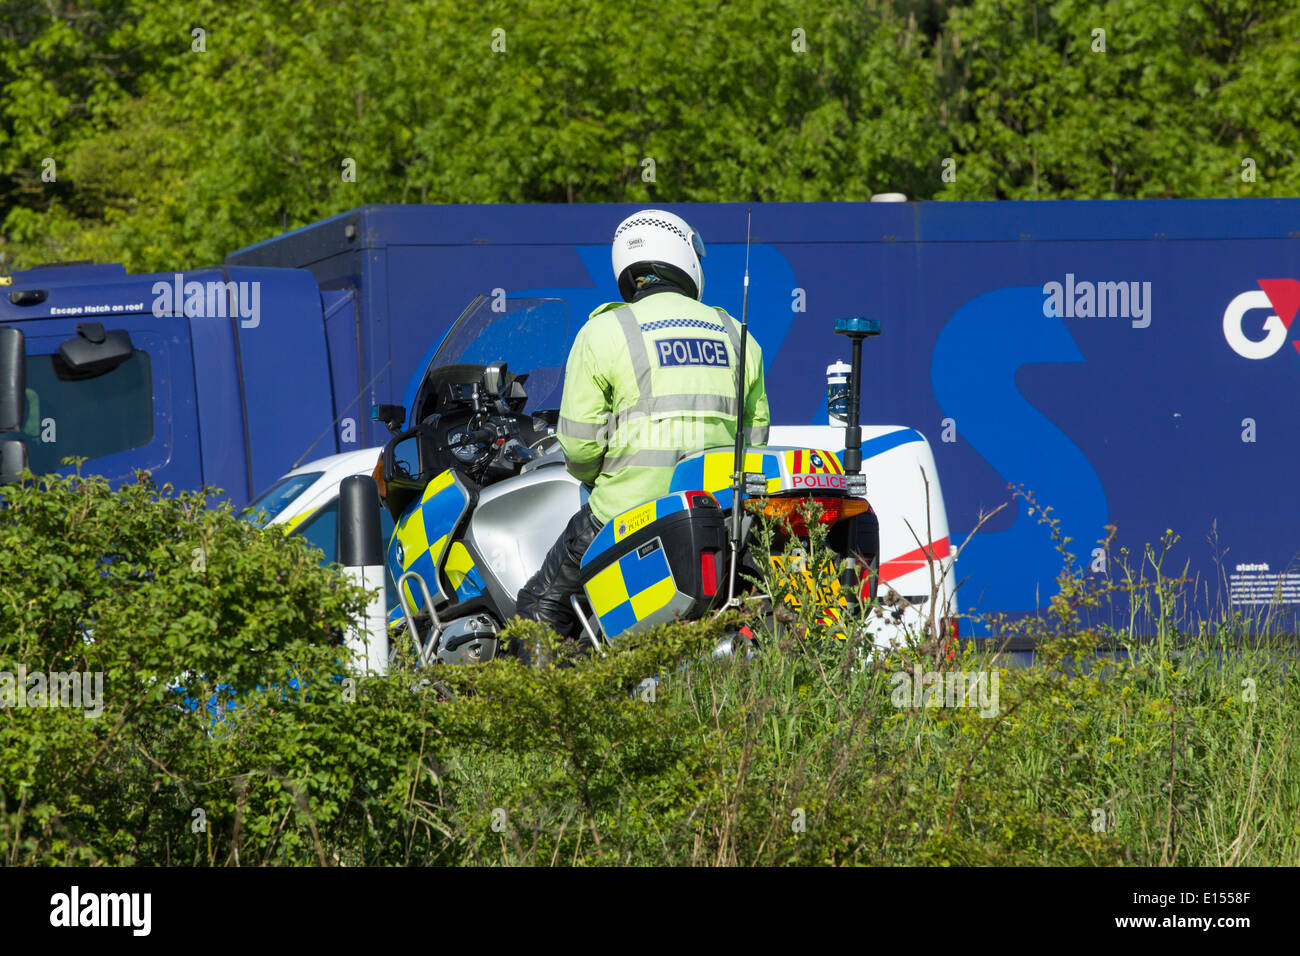 Police motorcycle in layby on Dual Carriageway with G4S van passing - Stock Image